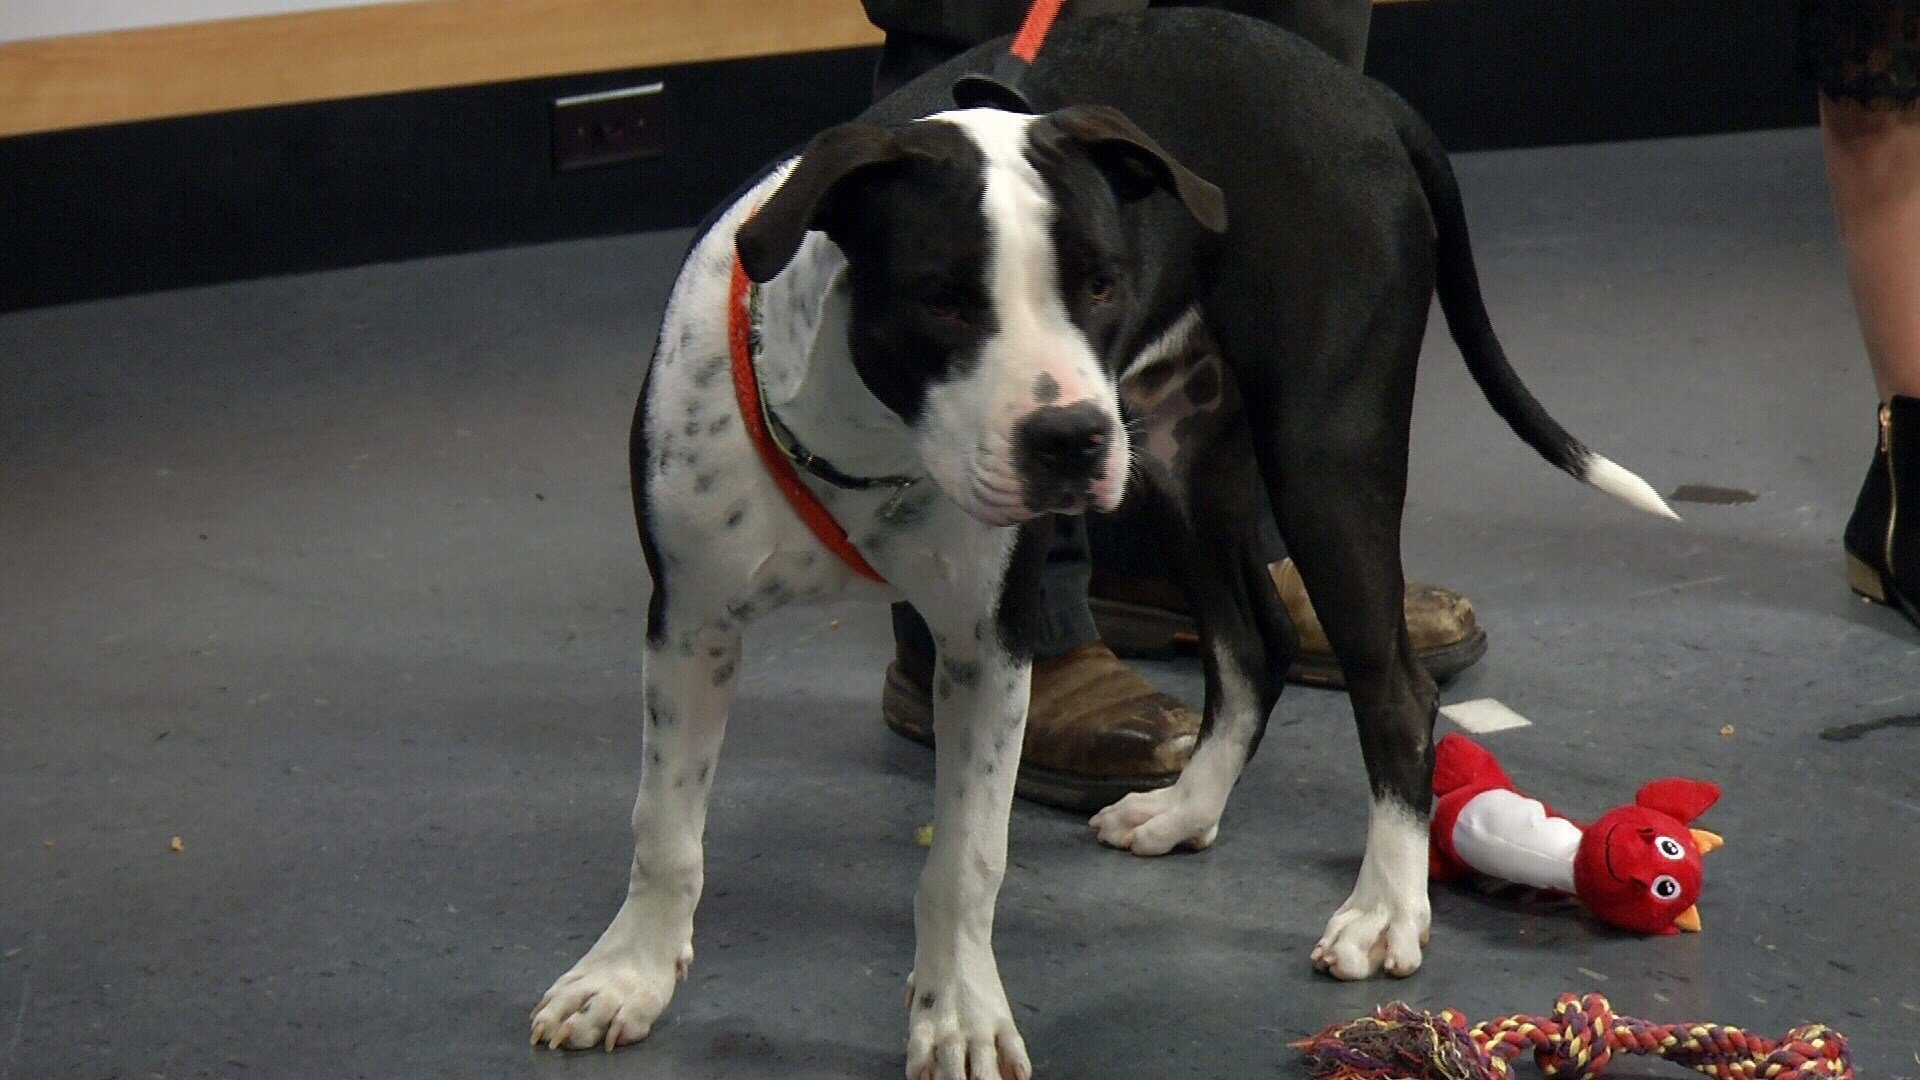 Meet our Pet of the Week, Cruiser!